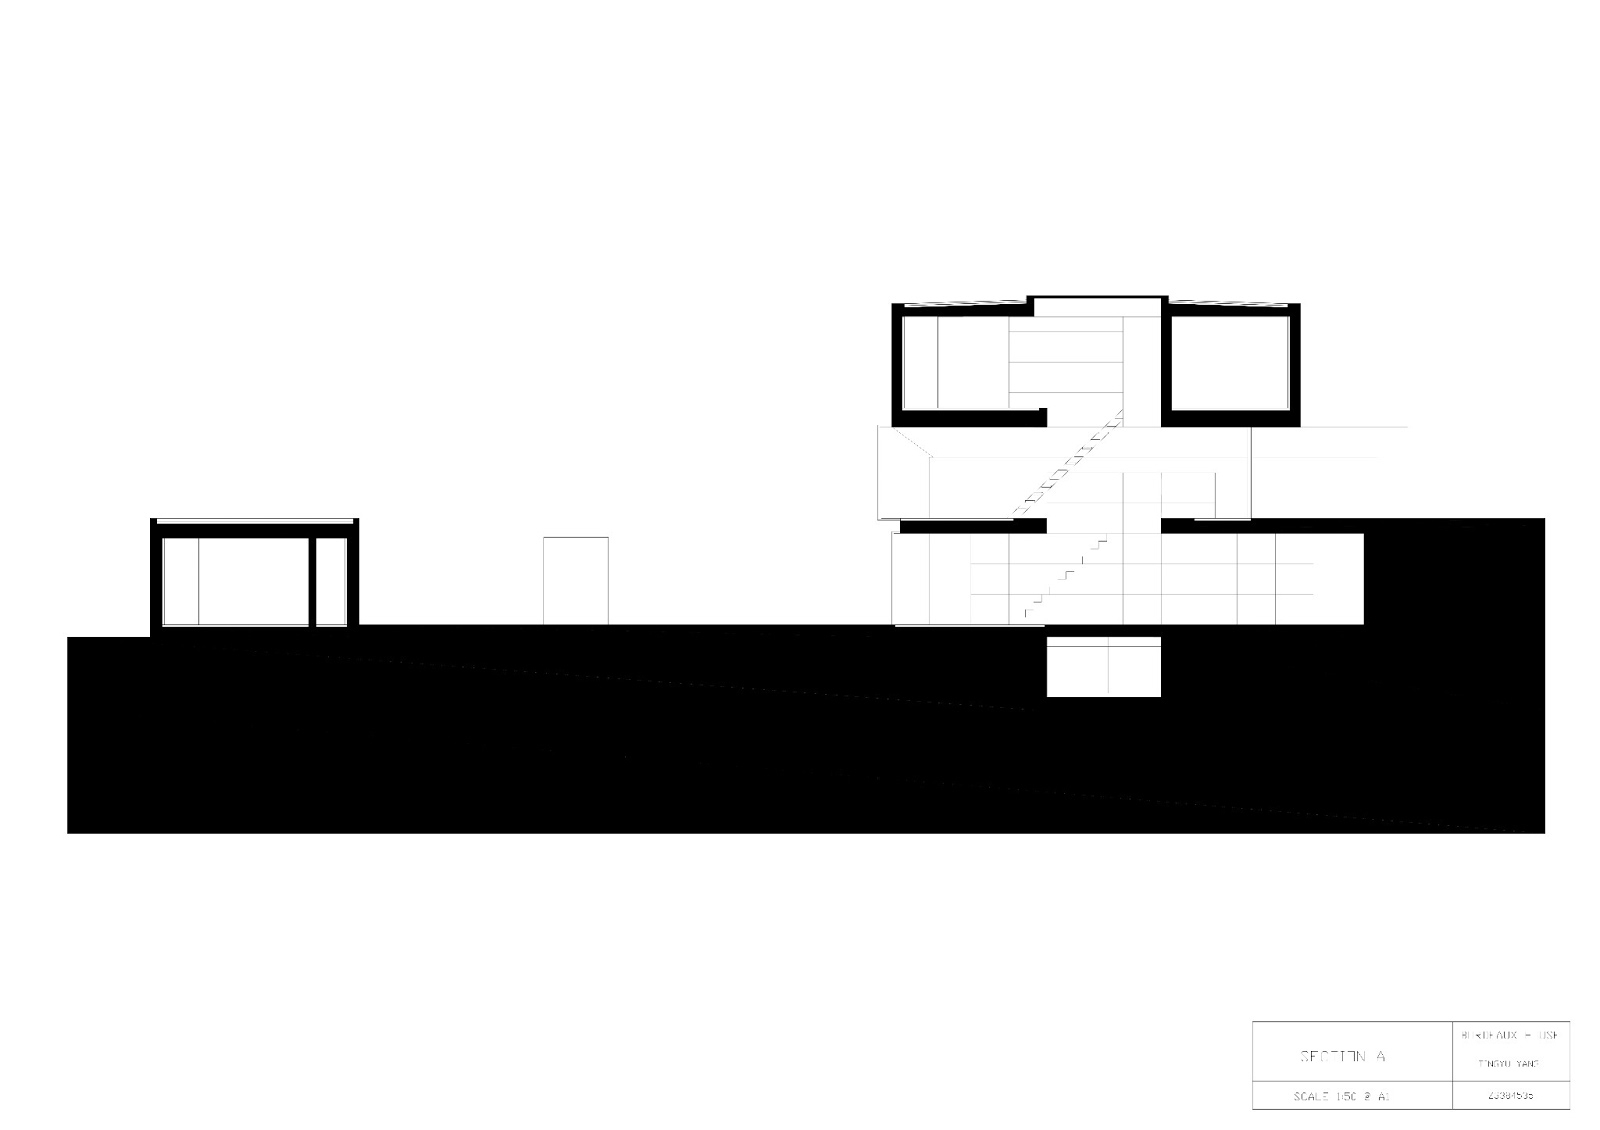 arch1201 design studio three carol bordeaux house drawings. Black Bedroom Furniture Sets. Home Design Ideas